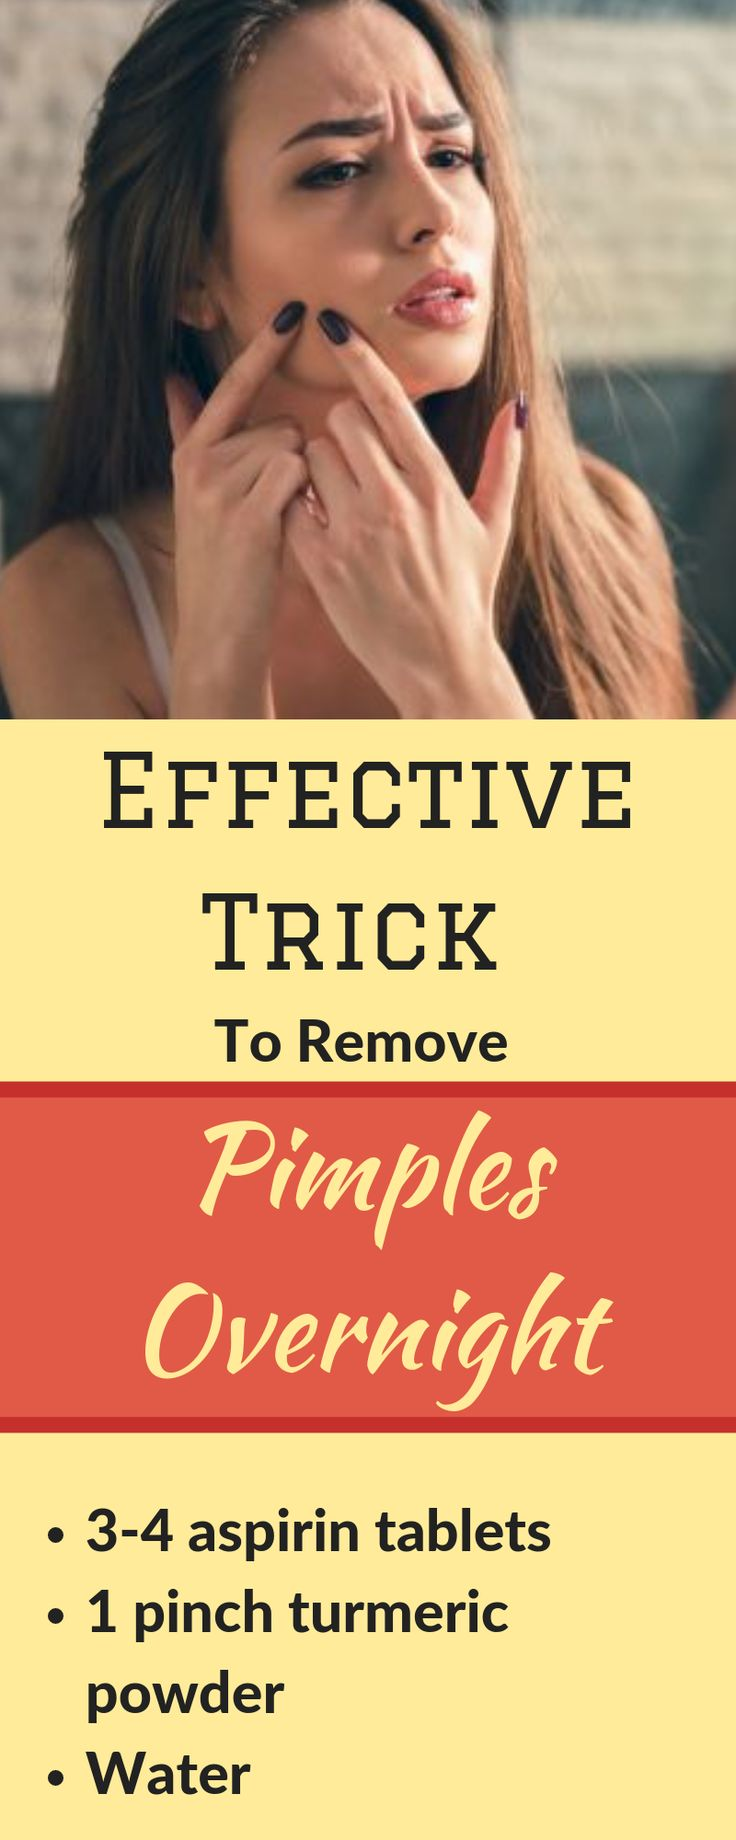 Effective trick to remove pimples overnight